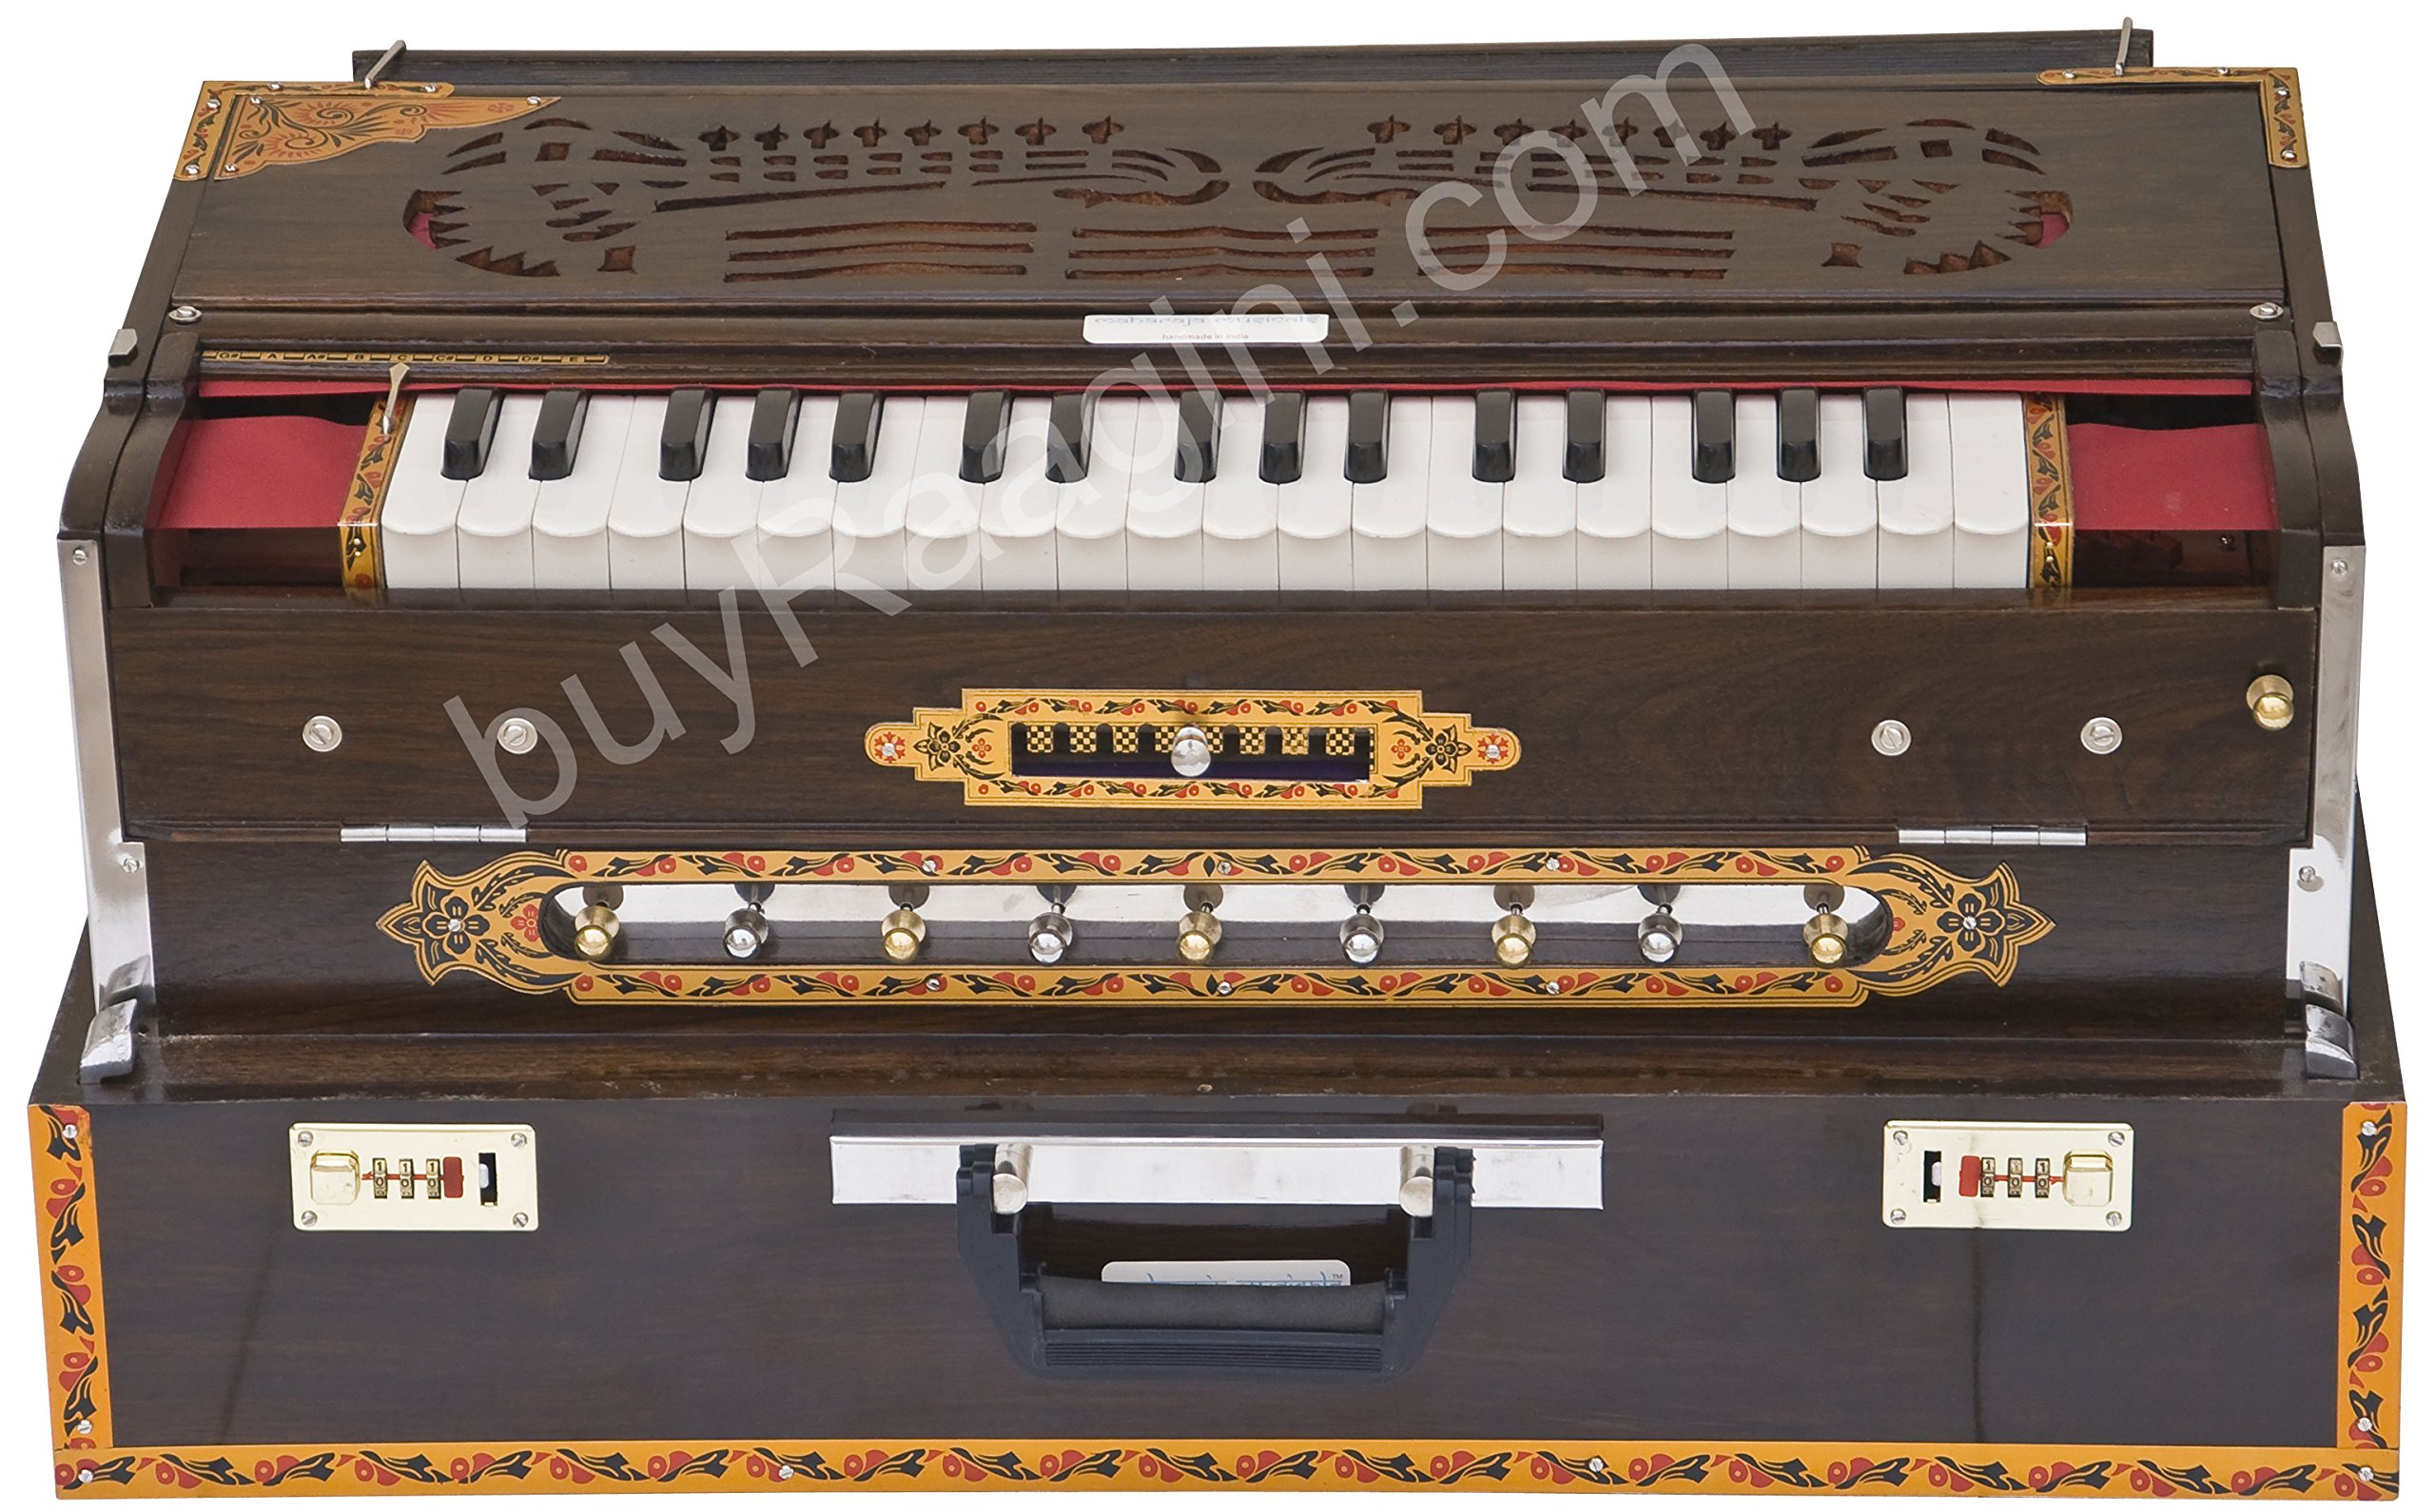 Maharaja Musicals Calcutta Harmonium, Scale Changer, In USA, Concert Quality, Triple Reed, 9 Scales - 3 3/4 Octave, Folding, Coupler, Tuned to A440, Mahogany Color, Padded Bag (PDI-BGH-MMF)